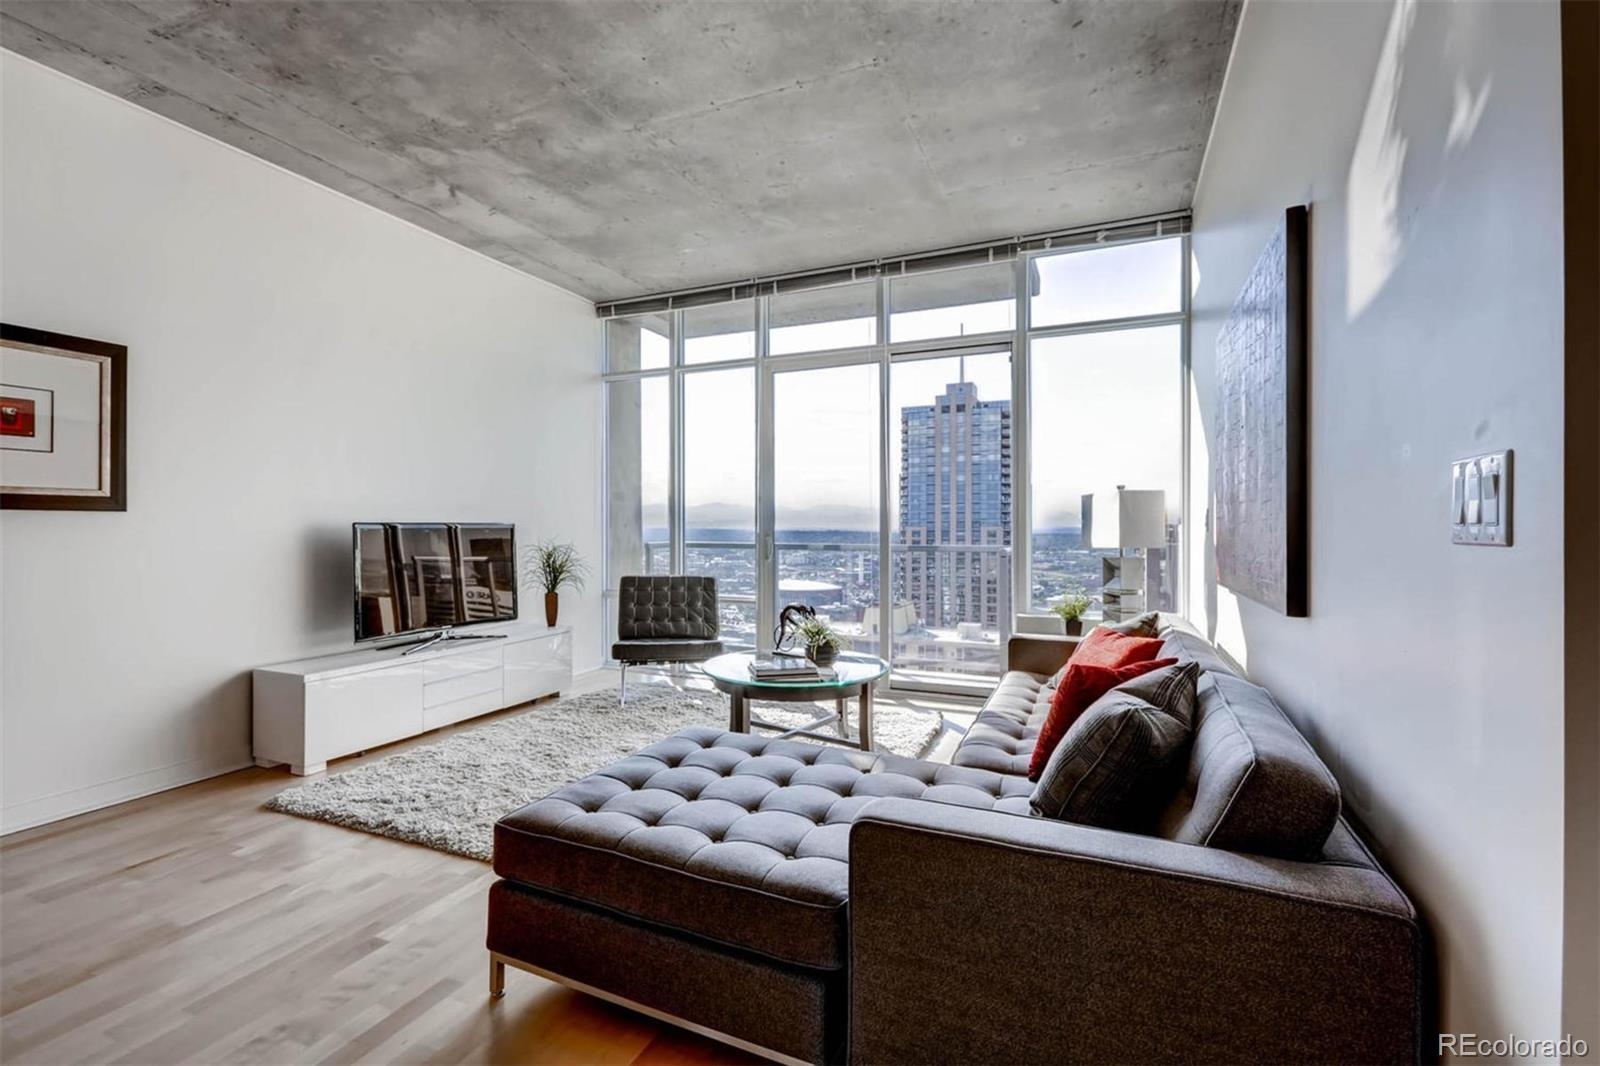 AWAKEN EACH DAY TO BREATHTAKING VIEWS OF DOWNTOWN AND BEYOND!  This is a great value -- You can't go any higher up at SPIRE and find a better-priced 1-bedroom home available.  This 37th floor, 1 bed/1 bath condo has a rare floor plan, featuring walls of glass in BOTH the living room AND the bedroom! This residence includes upgraded appliances and finishes, and some of the most spectacular views in Denver. Direct views of downtown's soaring skyscrapers, Elitch Gardens, the Pepsi Center, Mile High Stadium, and the Rocky Mountains. This home also comes with access to the exclusive SkyClub lounge in SPIRE's 42nd-floor penthouse. Also included are 1 deeded parking space & 1 storage unit in the attached garage. The 42-story SPIRE is LEED-certified, with 40,000 sq ft of awesome amenities, including a rooftop pool and hot tub which are heated & open year-round,  extensive health club, The Zone multimedia lounge, the Box Office multimedia theater, garage dog park, yoga garden, outdoor grilling area, 10th-floor private event lounge, 24-hour courtesy desk, fully-furnished SPIRE guest suites, special accommodations for electric vehicles, and modern security & access control systems. Very well-maintained building! SPIRE Denver has fast internet coming soon-1 gig dedicated to each condo. Fastest downtown! Your new home is in the heart of it all. SPIRE is conveniently located at 14th Street & Champa Street. You can stroll or grab the free shuttle to Larimer Street restaurants, downtown's night life, the Colorado Convention Center, Denver Center for the Performing Arts, Denver Pavilions, Whole Foods Market, the emergent Union Station neighborhood and the A-Line train to Denver International Airport.  Come home to Downtown Denver's SPIRE -- life is better here!